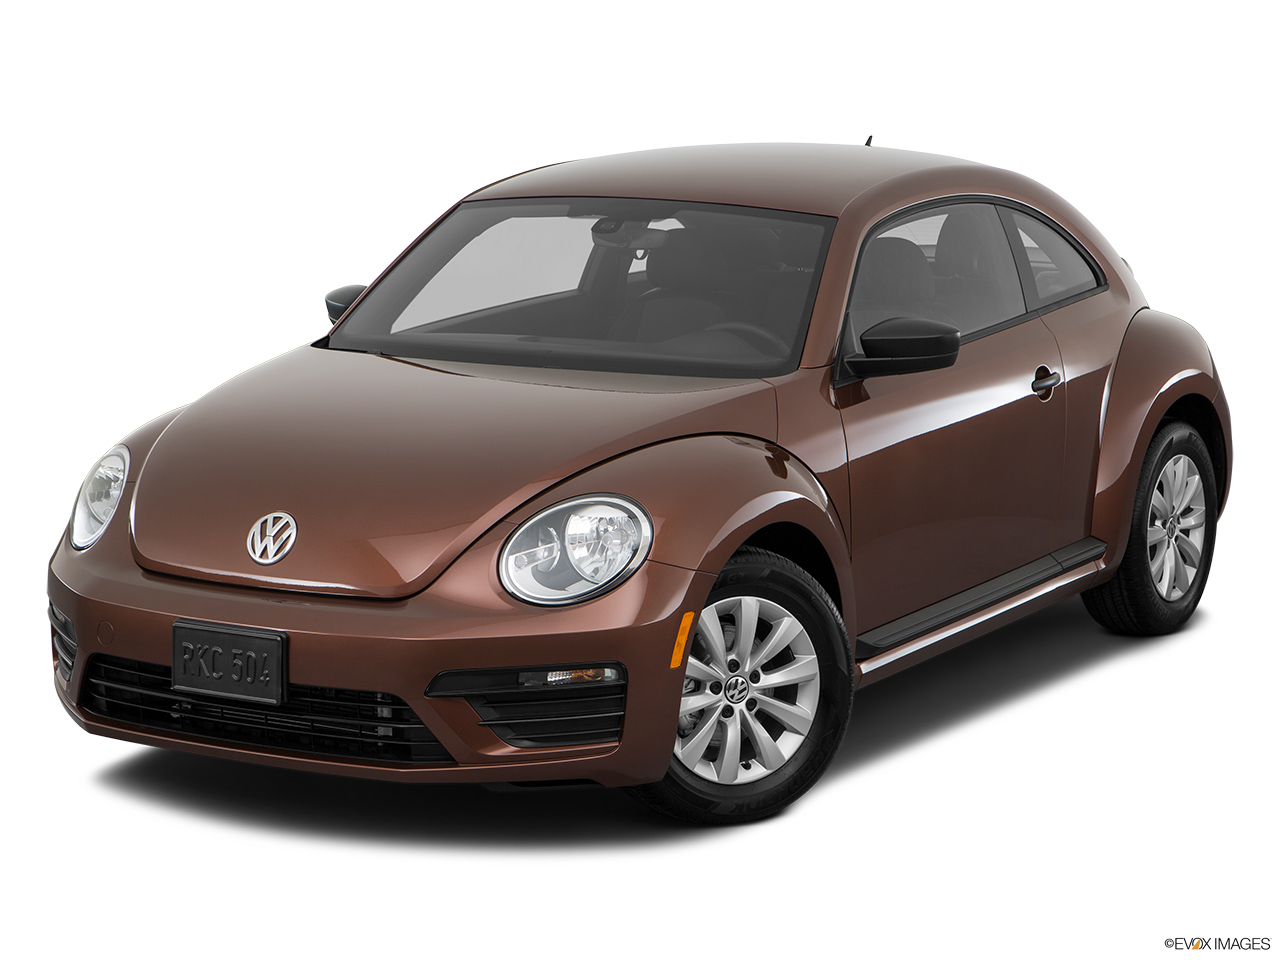 buggie for had penalties volkswagen tdi fortune vm technology off got easy the how one were paid vw and dieselgate beetle of billion emissions scandal models